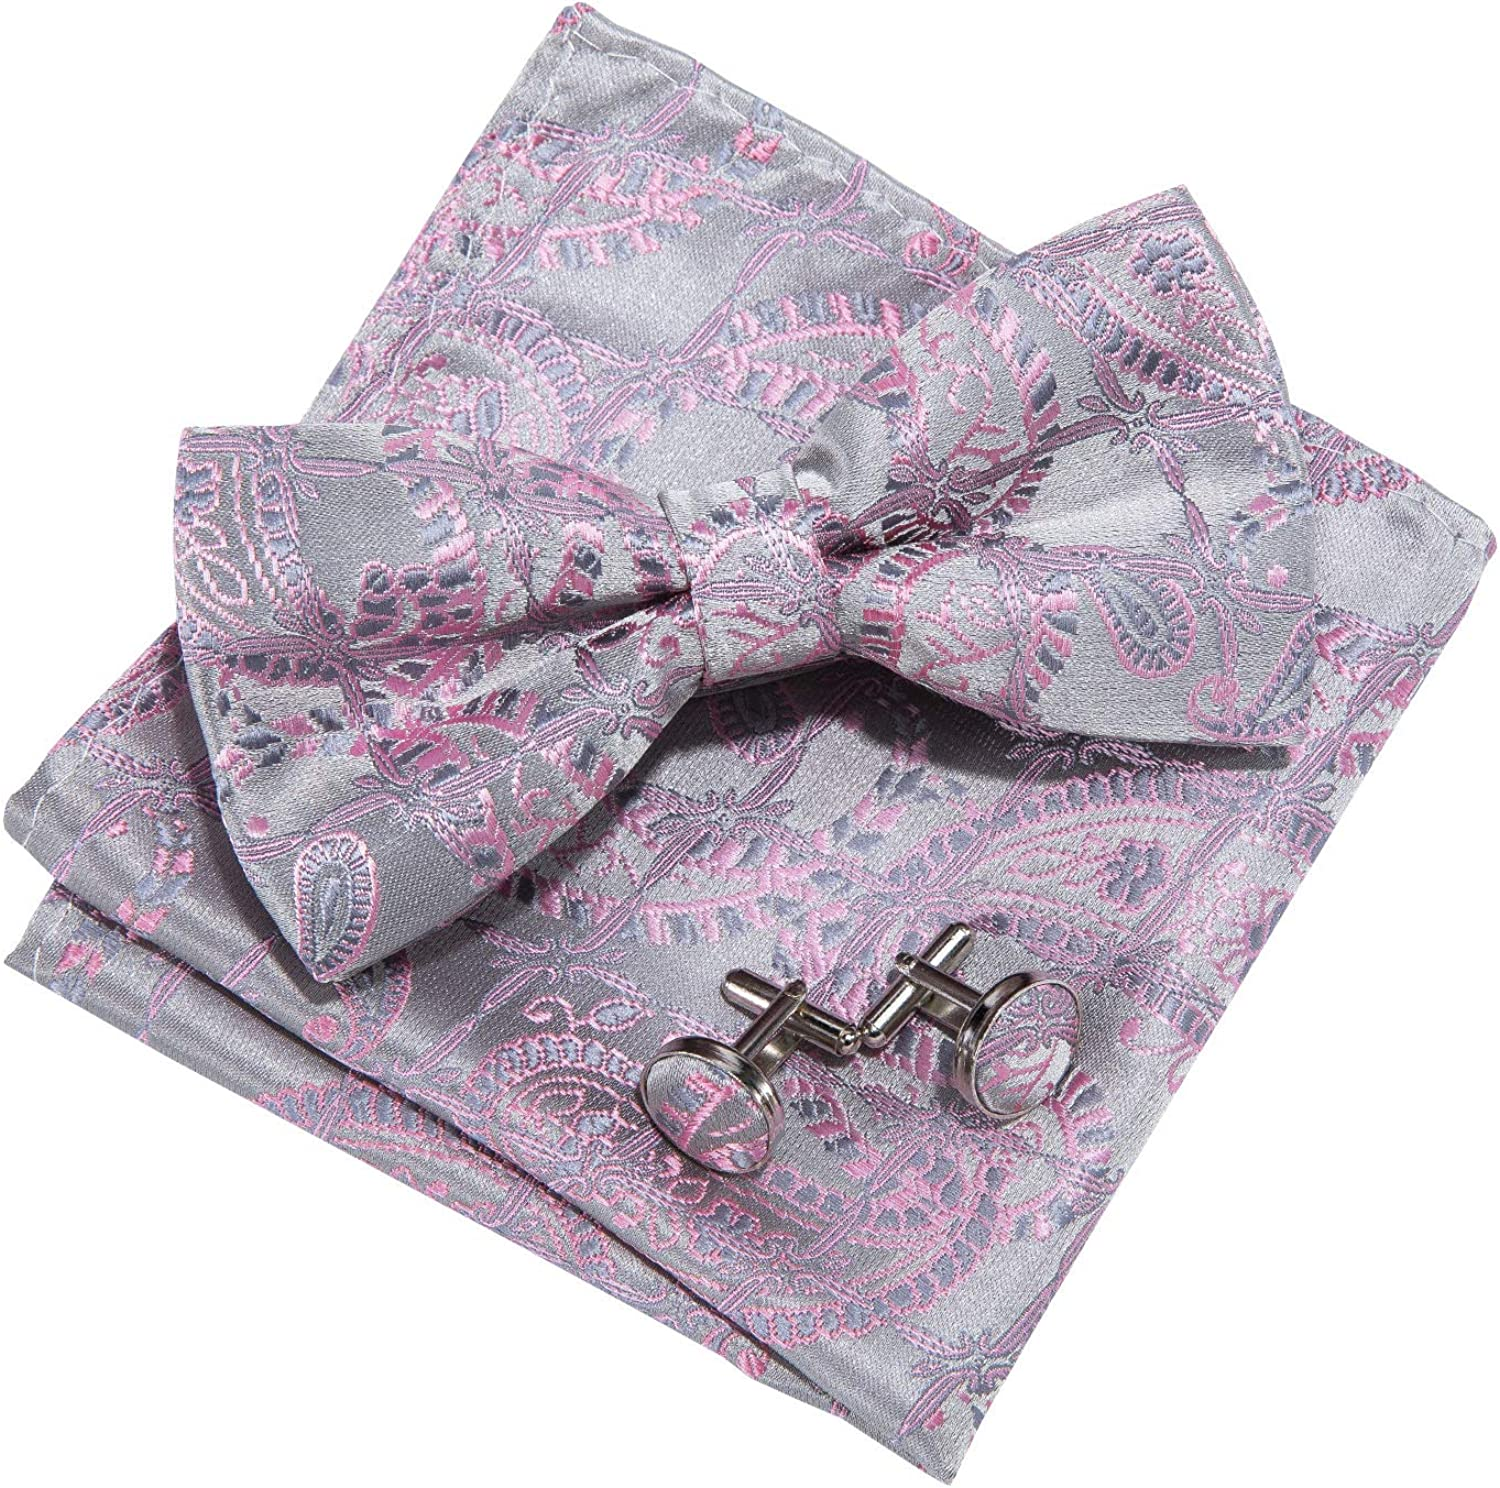 Barry.Wang Men Pre-tied Bow Tie Set with Pocket Square Cufflink Paisley Silk Bowtie Suit Tuxedo